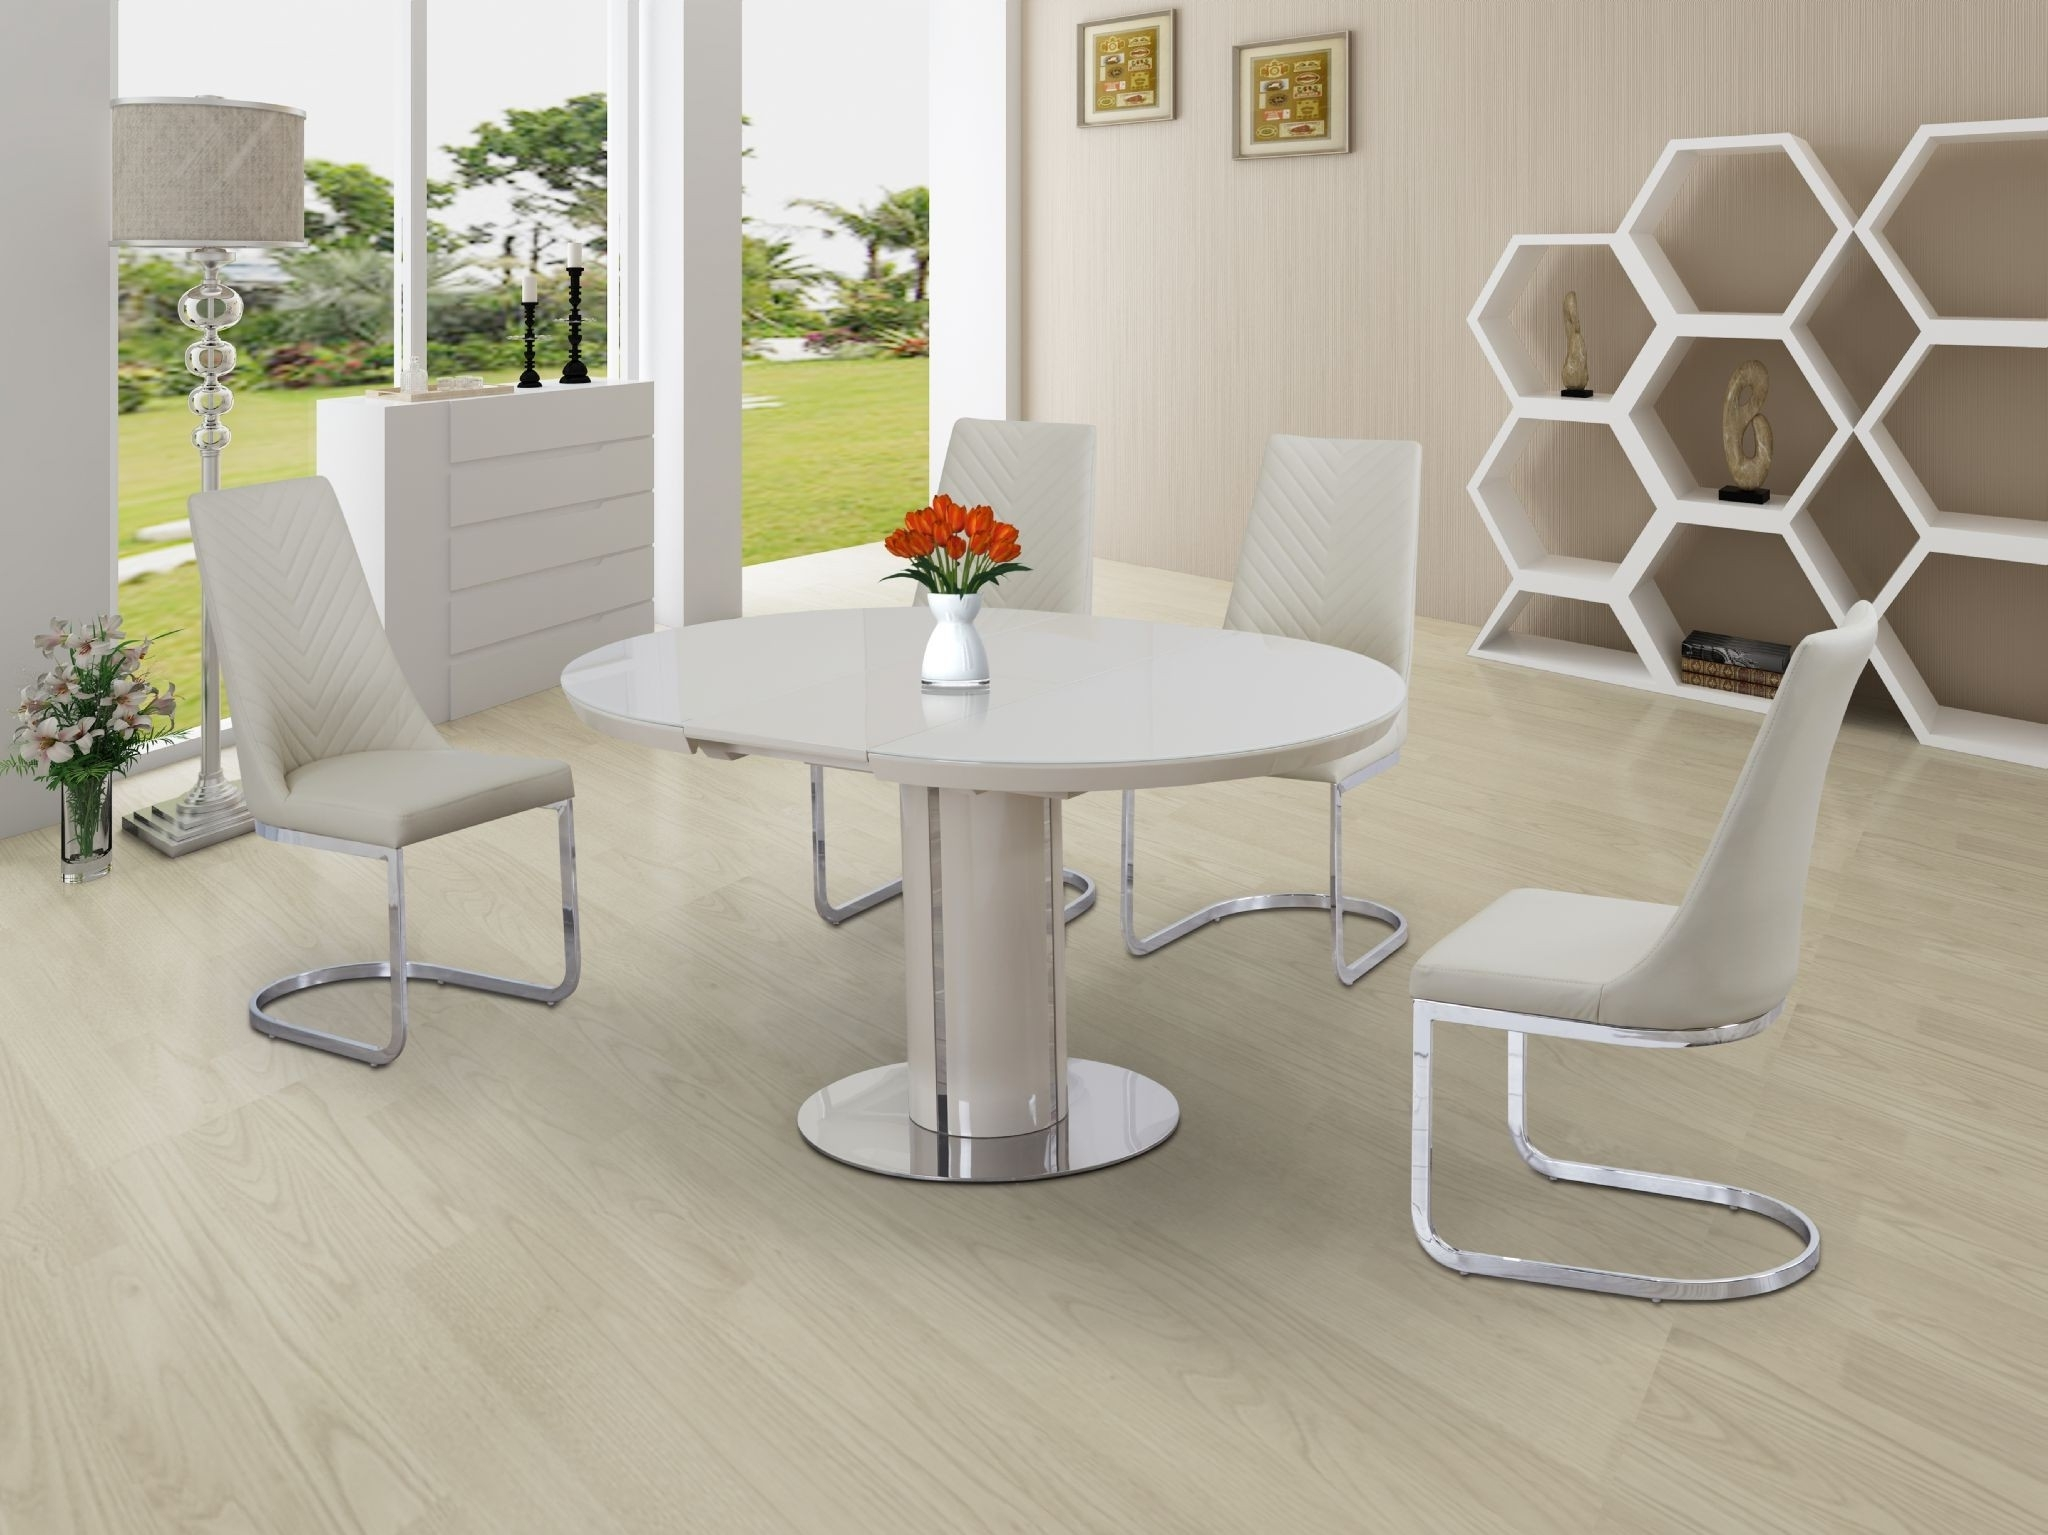 Buy Annular Cream High Gloss Extending Dining Table Regarding Newest Round High Gloss Dining Tables (View 3 of 25)